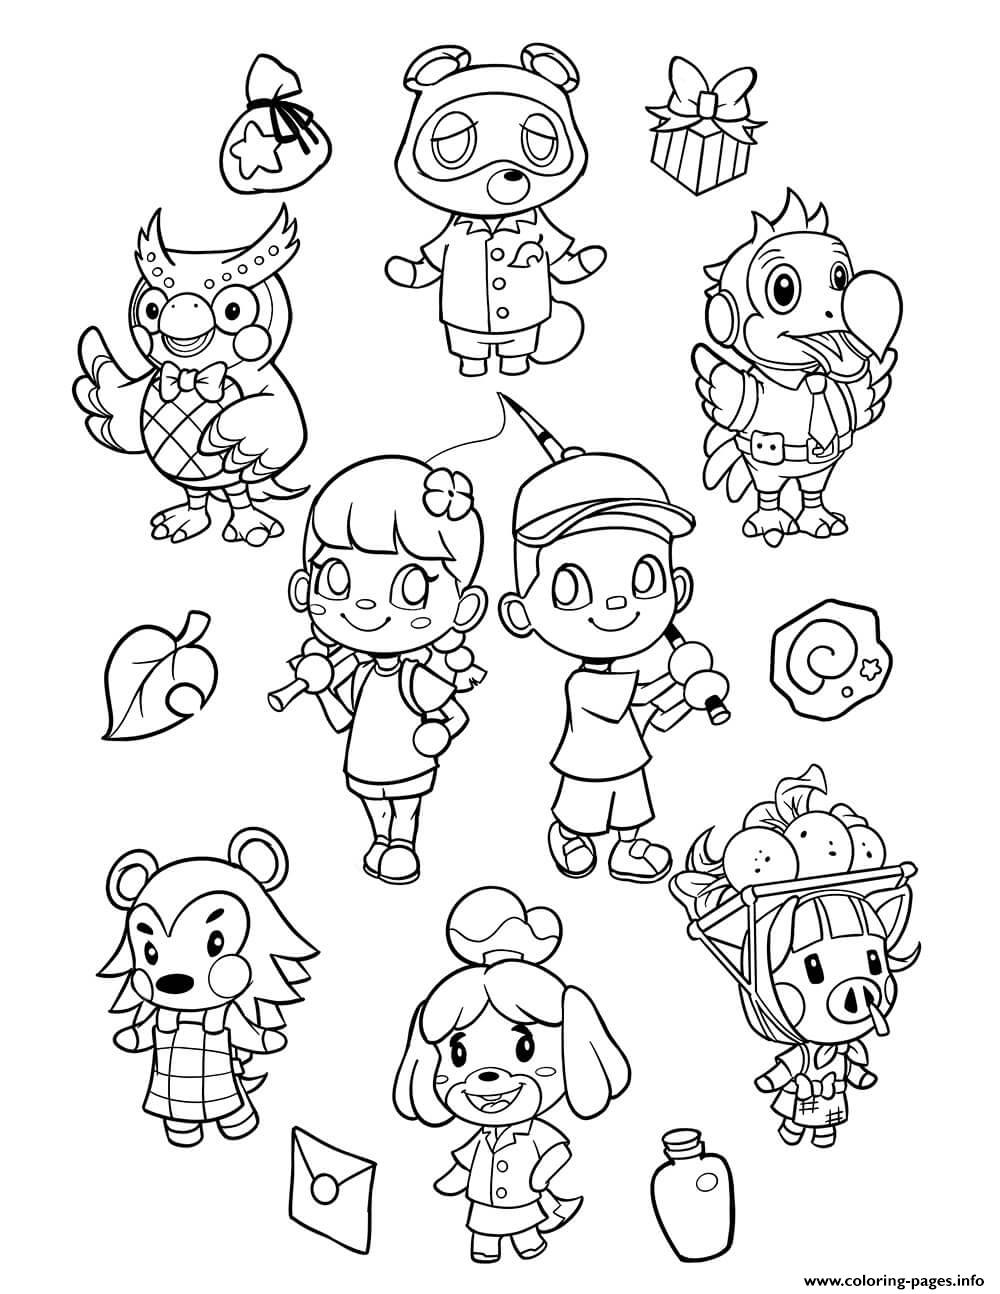 Animal Crossing New Horizons coloring pages